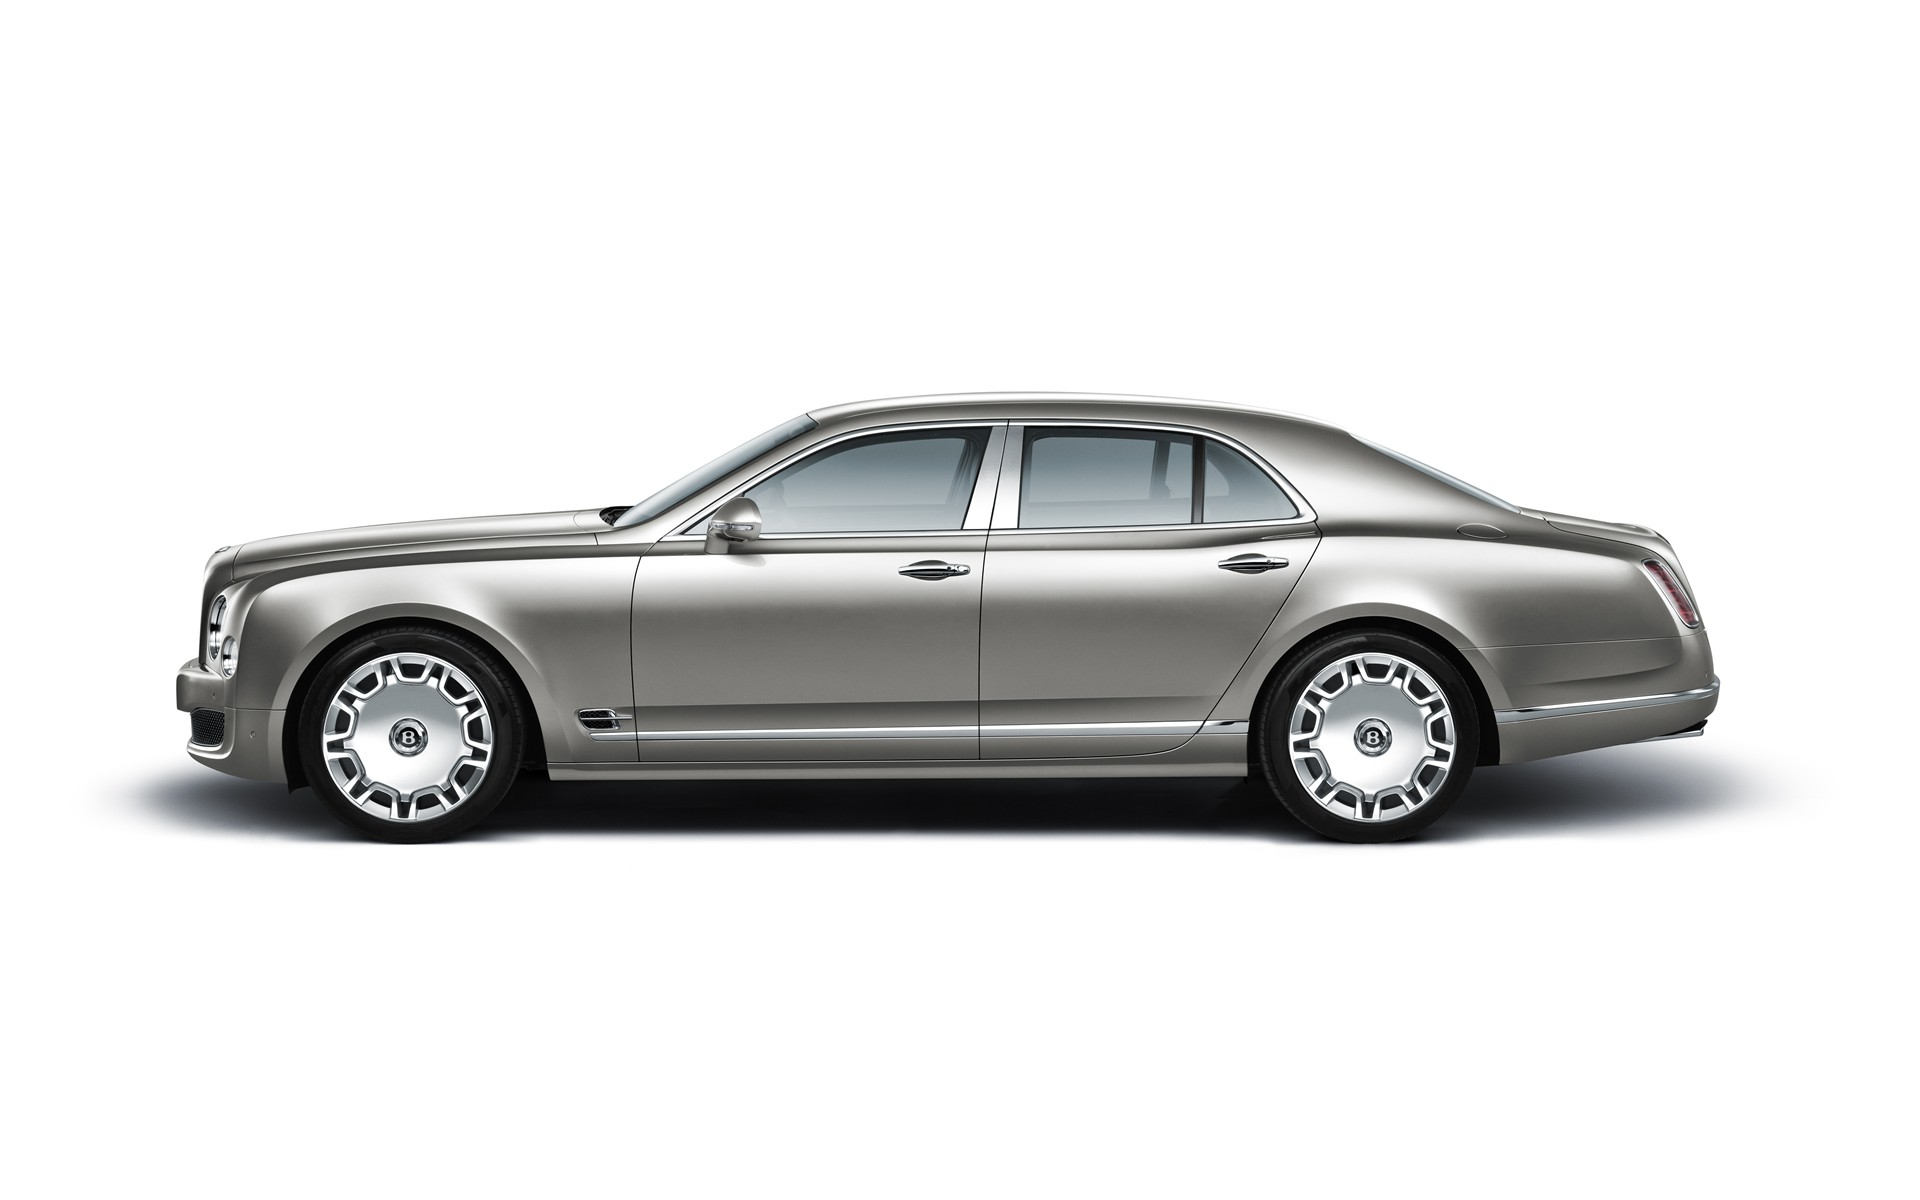 2011 Bentley Mulsanne 1 Bentley Mulsanne 2011 More Dynamic and Fuel Economic